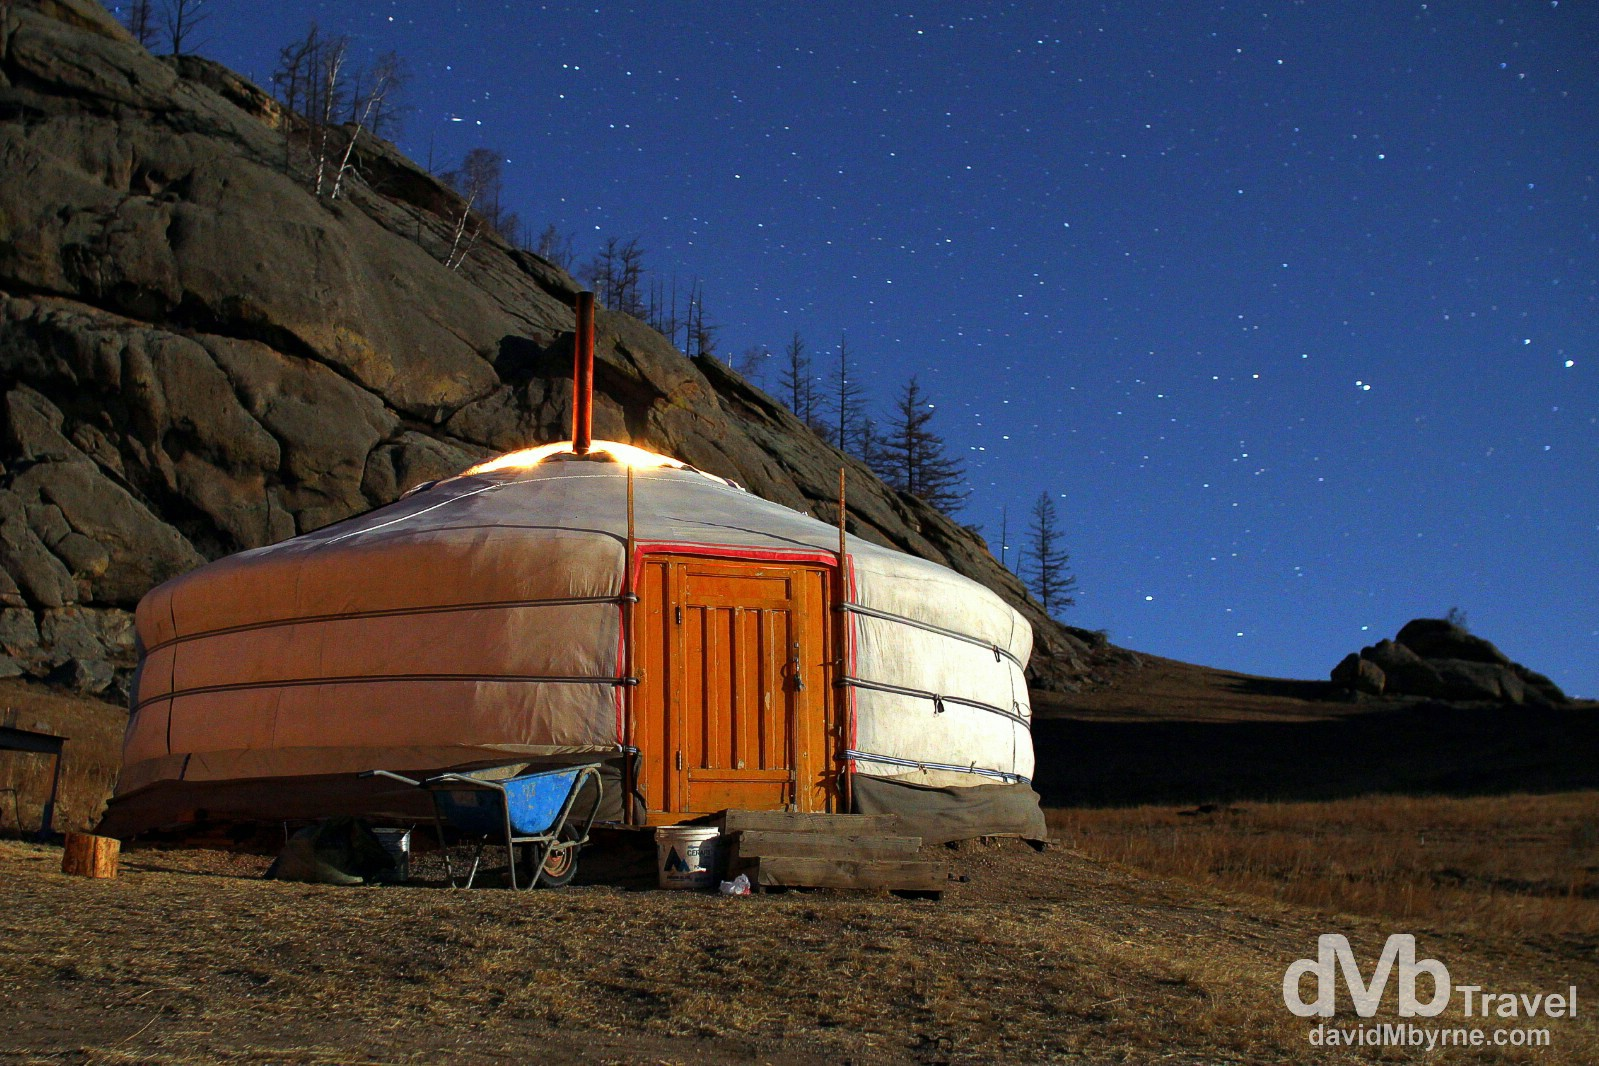 A 30-second exposure of a Ger in Guru Tourist Park, Terelj National Park, Mongolia. November 3rd 2012.